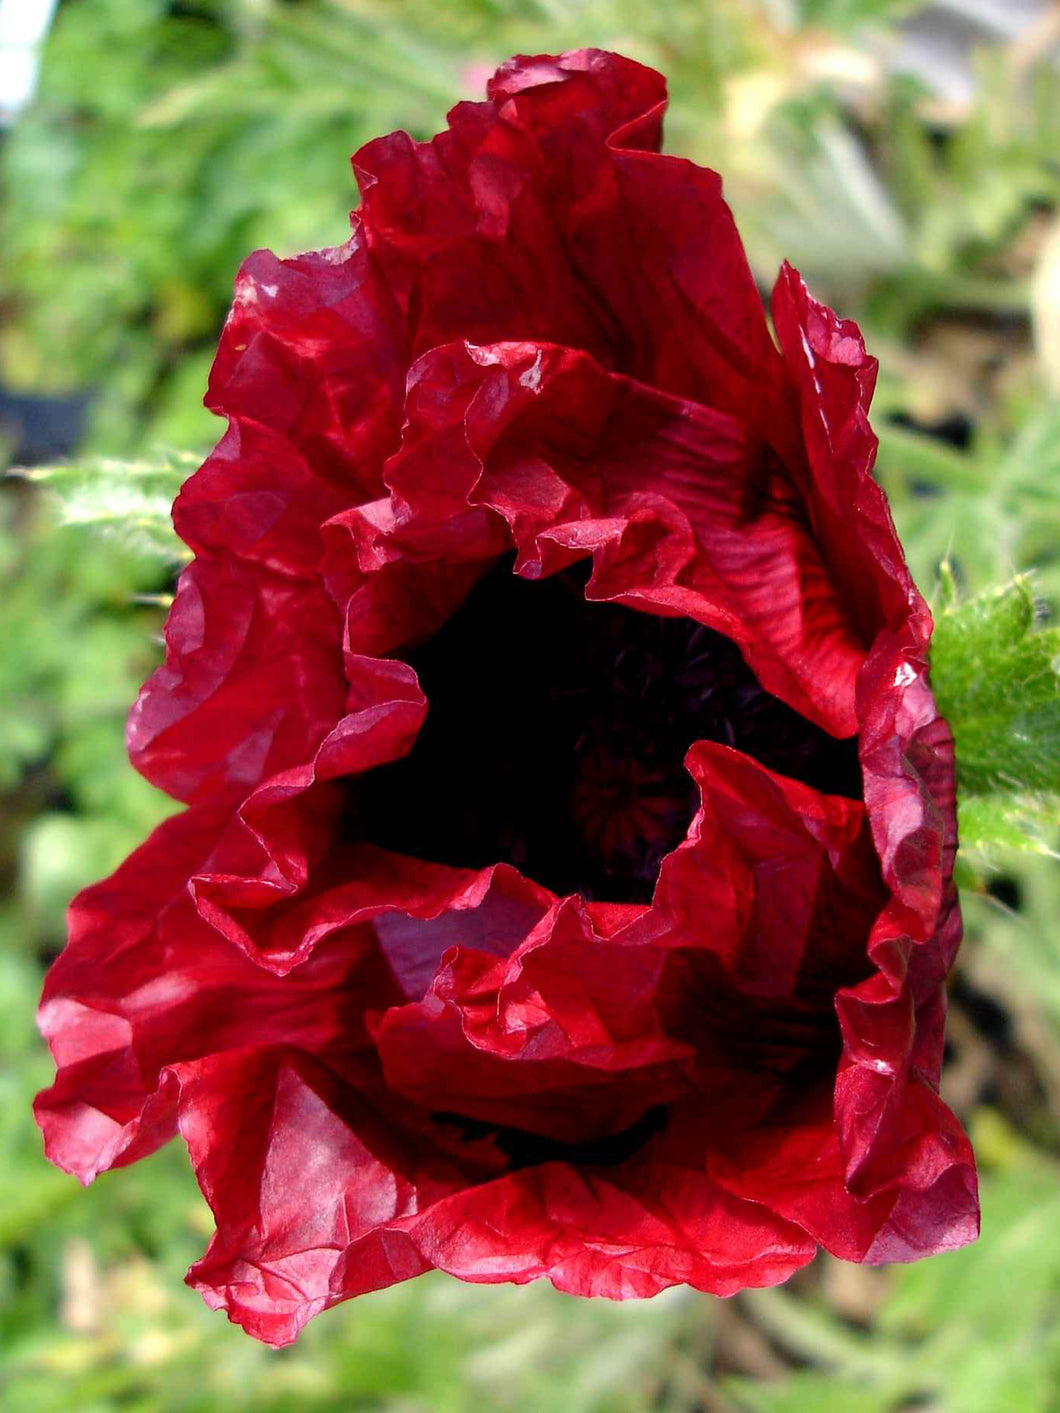 Royal Chocolate Distinction Poppy